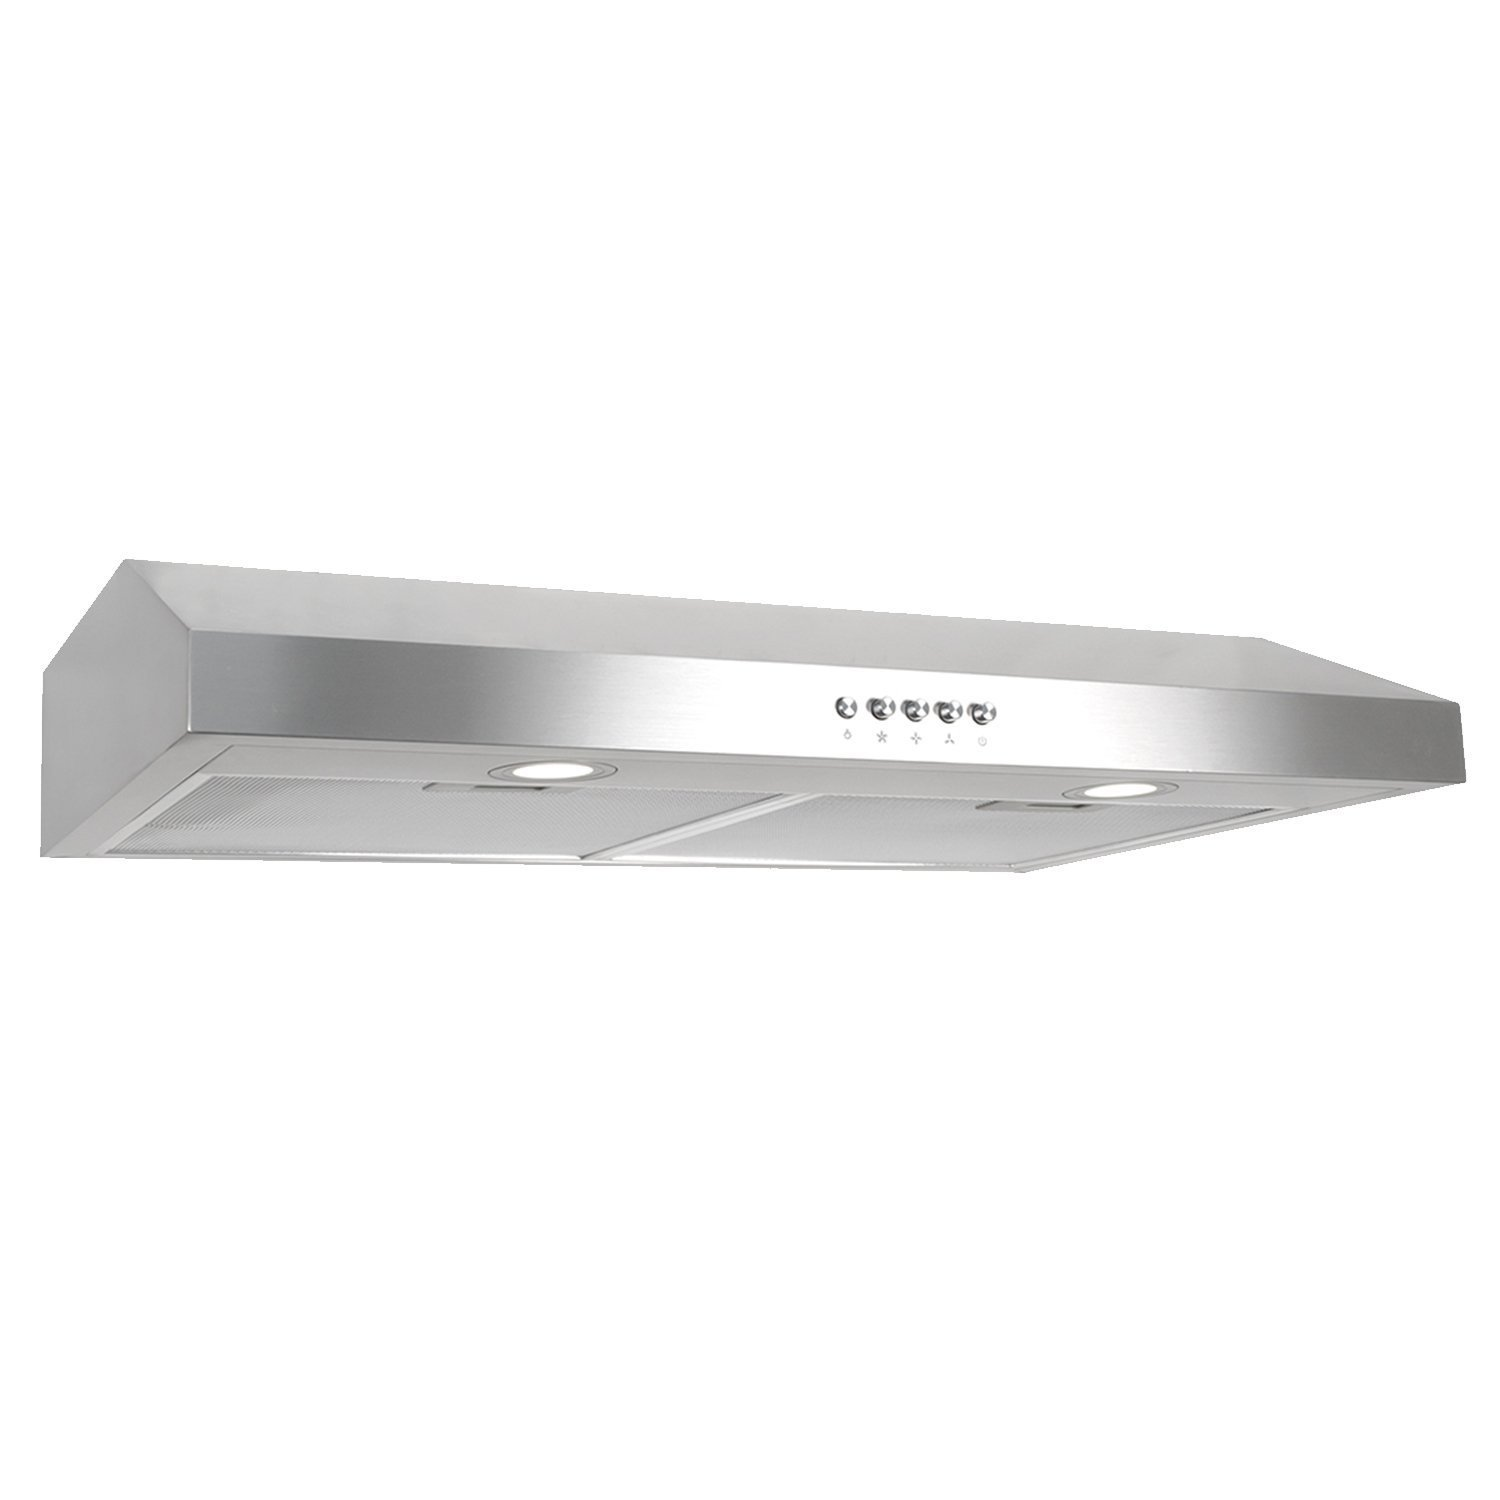 Cosmo 30 in. 250 CFM Ducted Under Cabinet Range Hood with Push Button Control Panel, Kitchen Vent Cooking Fan Range Hood with Aluminum Filters and LED Lighting COS-5U30